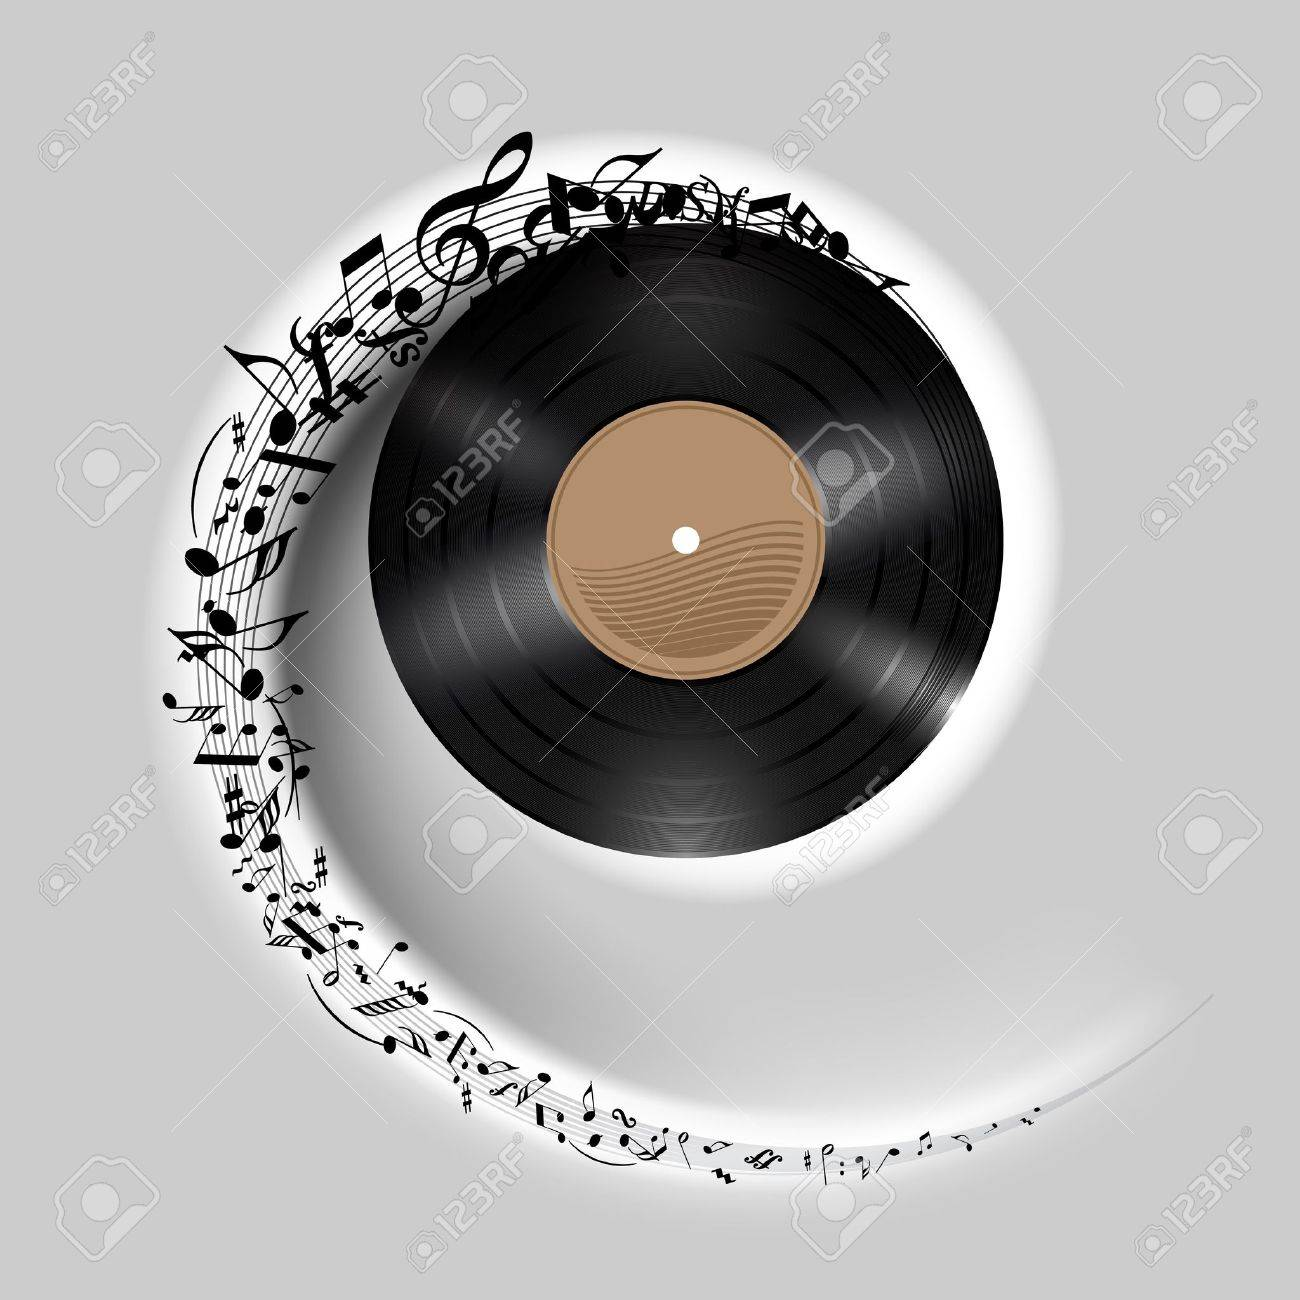 Vinyl disc with music notes flying out in white spiral. Effect of rolling record. Illustration on gray background. Stock Vector - 21943850